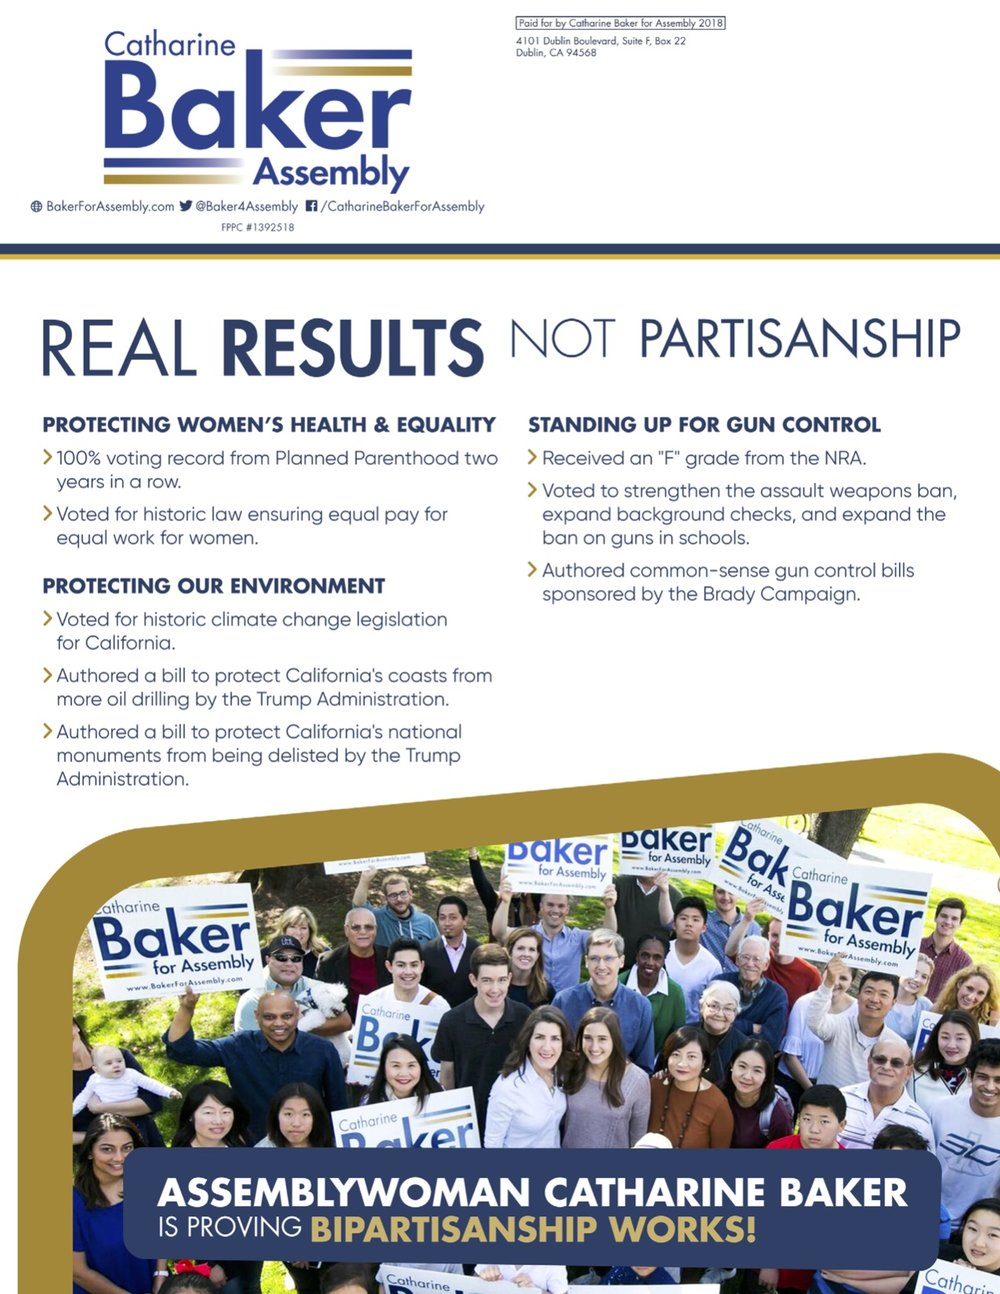 Baker-02BipartisanshipWorks-FINAL (1) 2.jpg